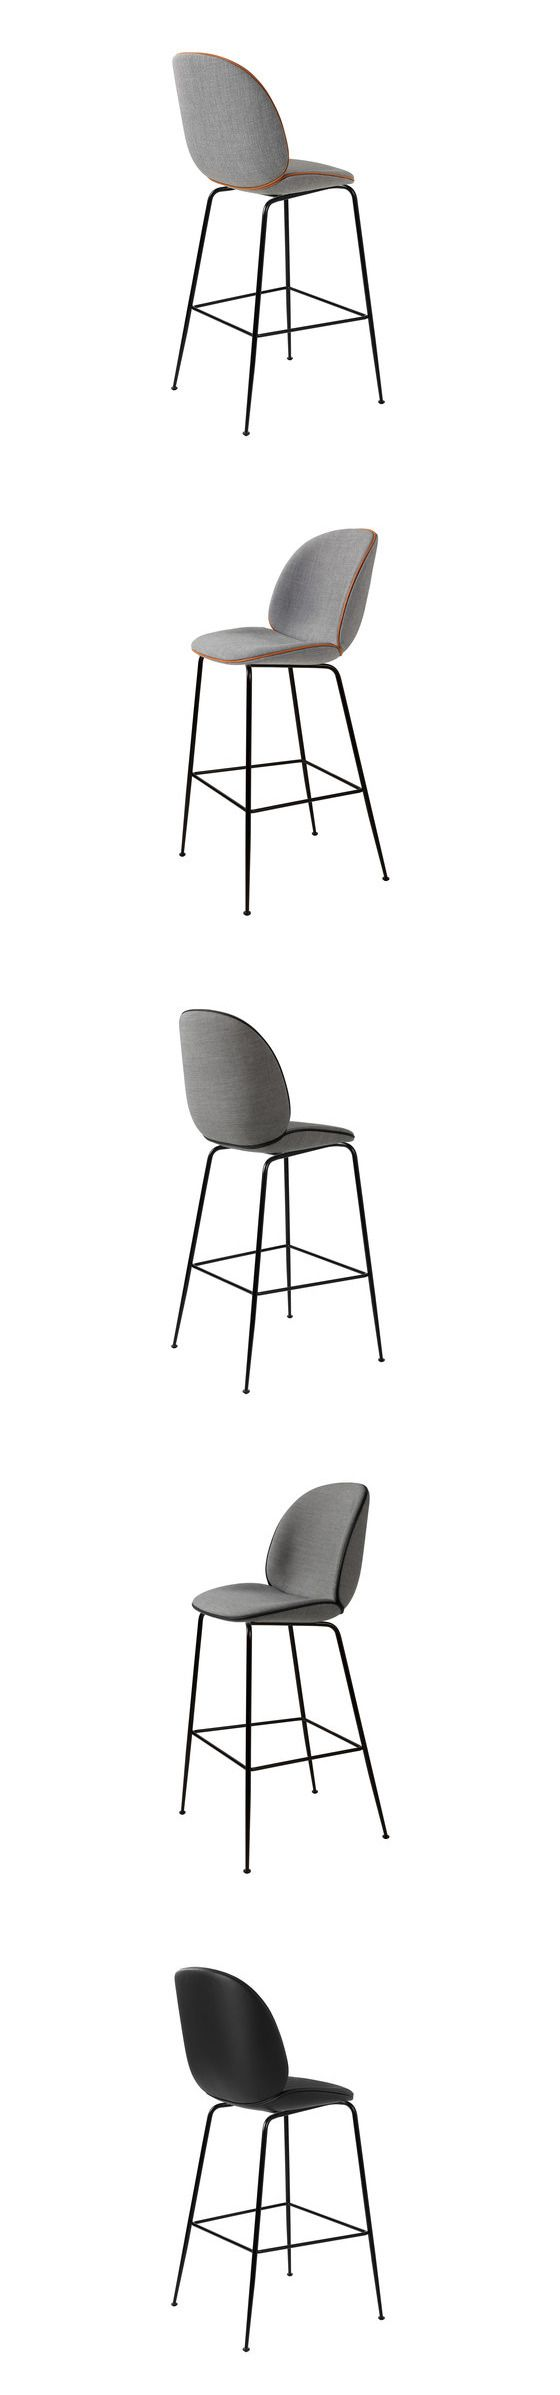 Home products chairs ics ipsilon - The Comfortable Yet Dynamic Design Makes This Chair Suitable For Multiple Environments Whether It Is In The Home